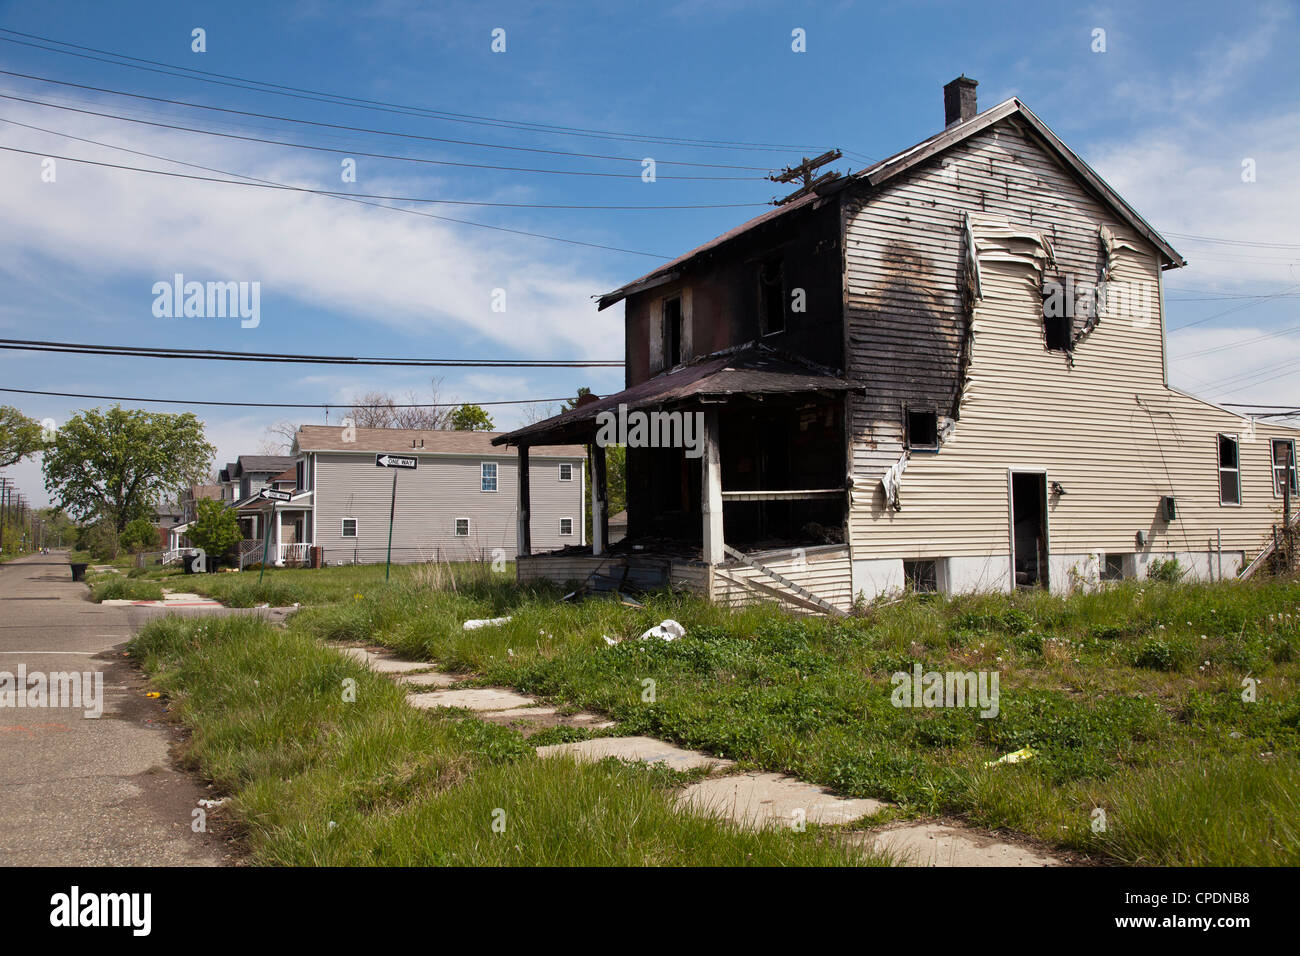 Burned out house in neighborhood of Detroit, Michigan - Stock Image